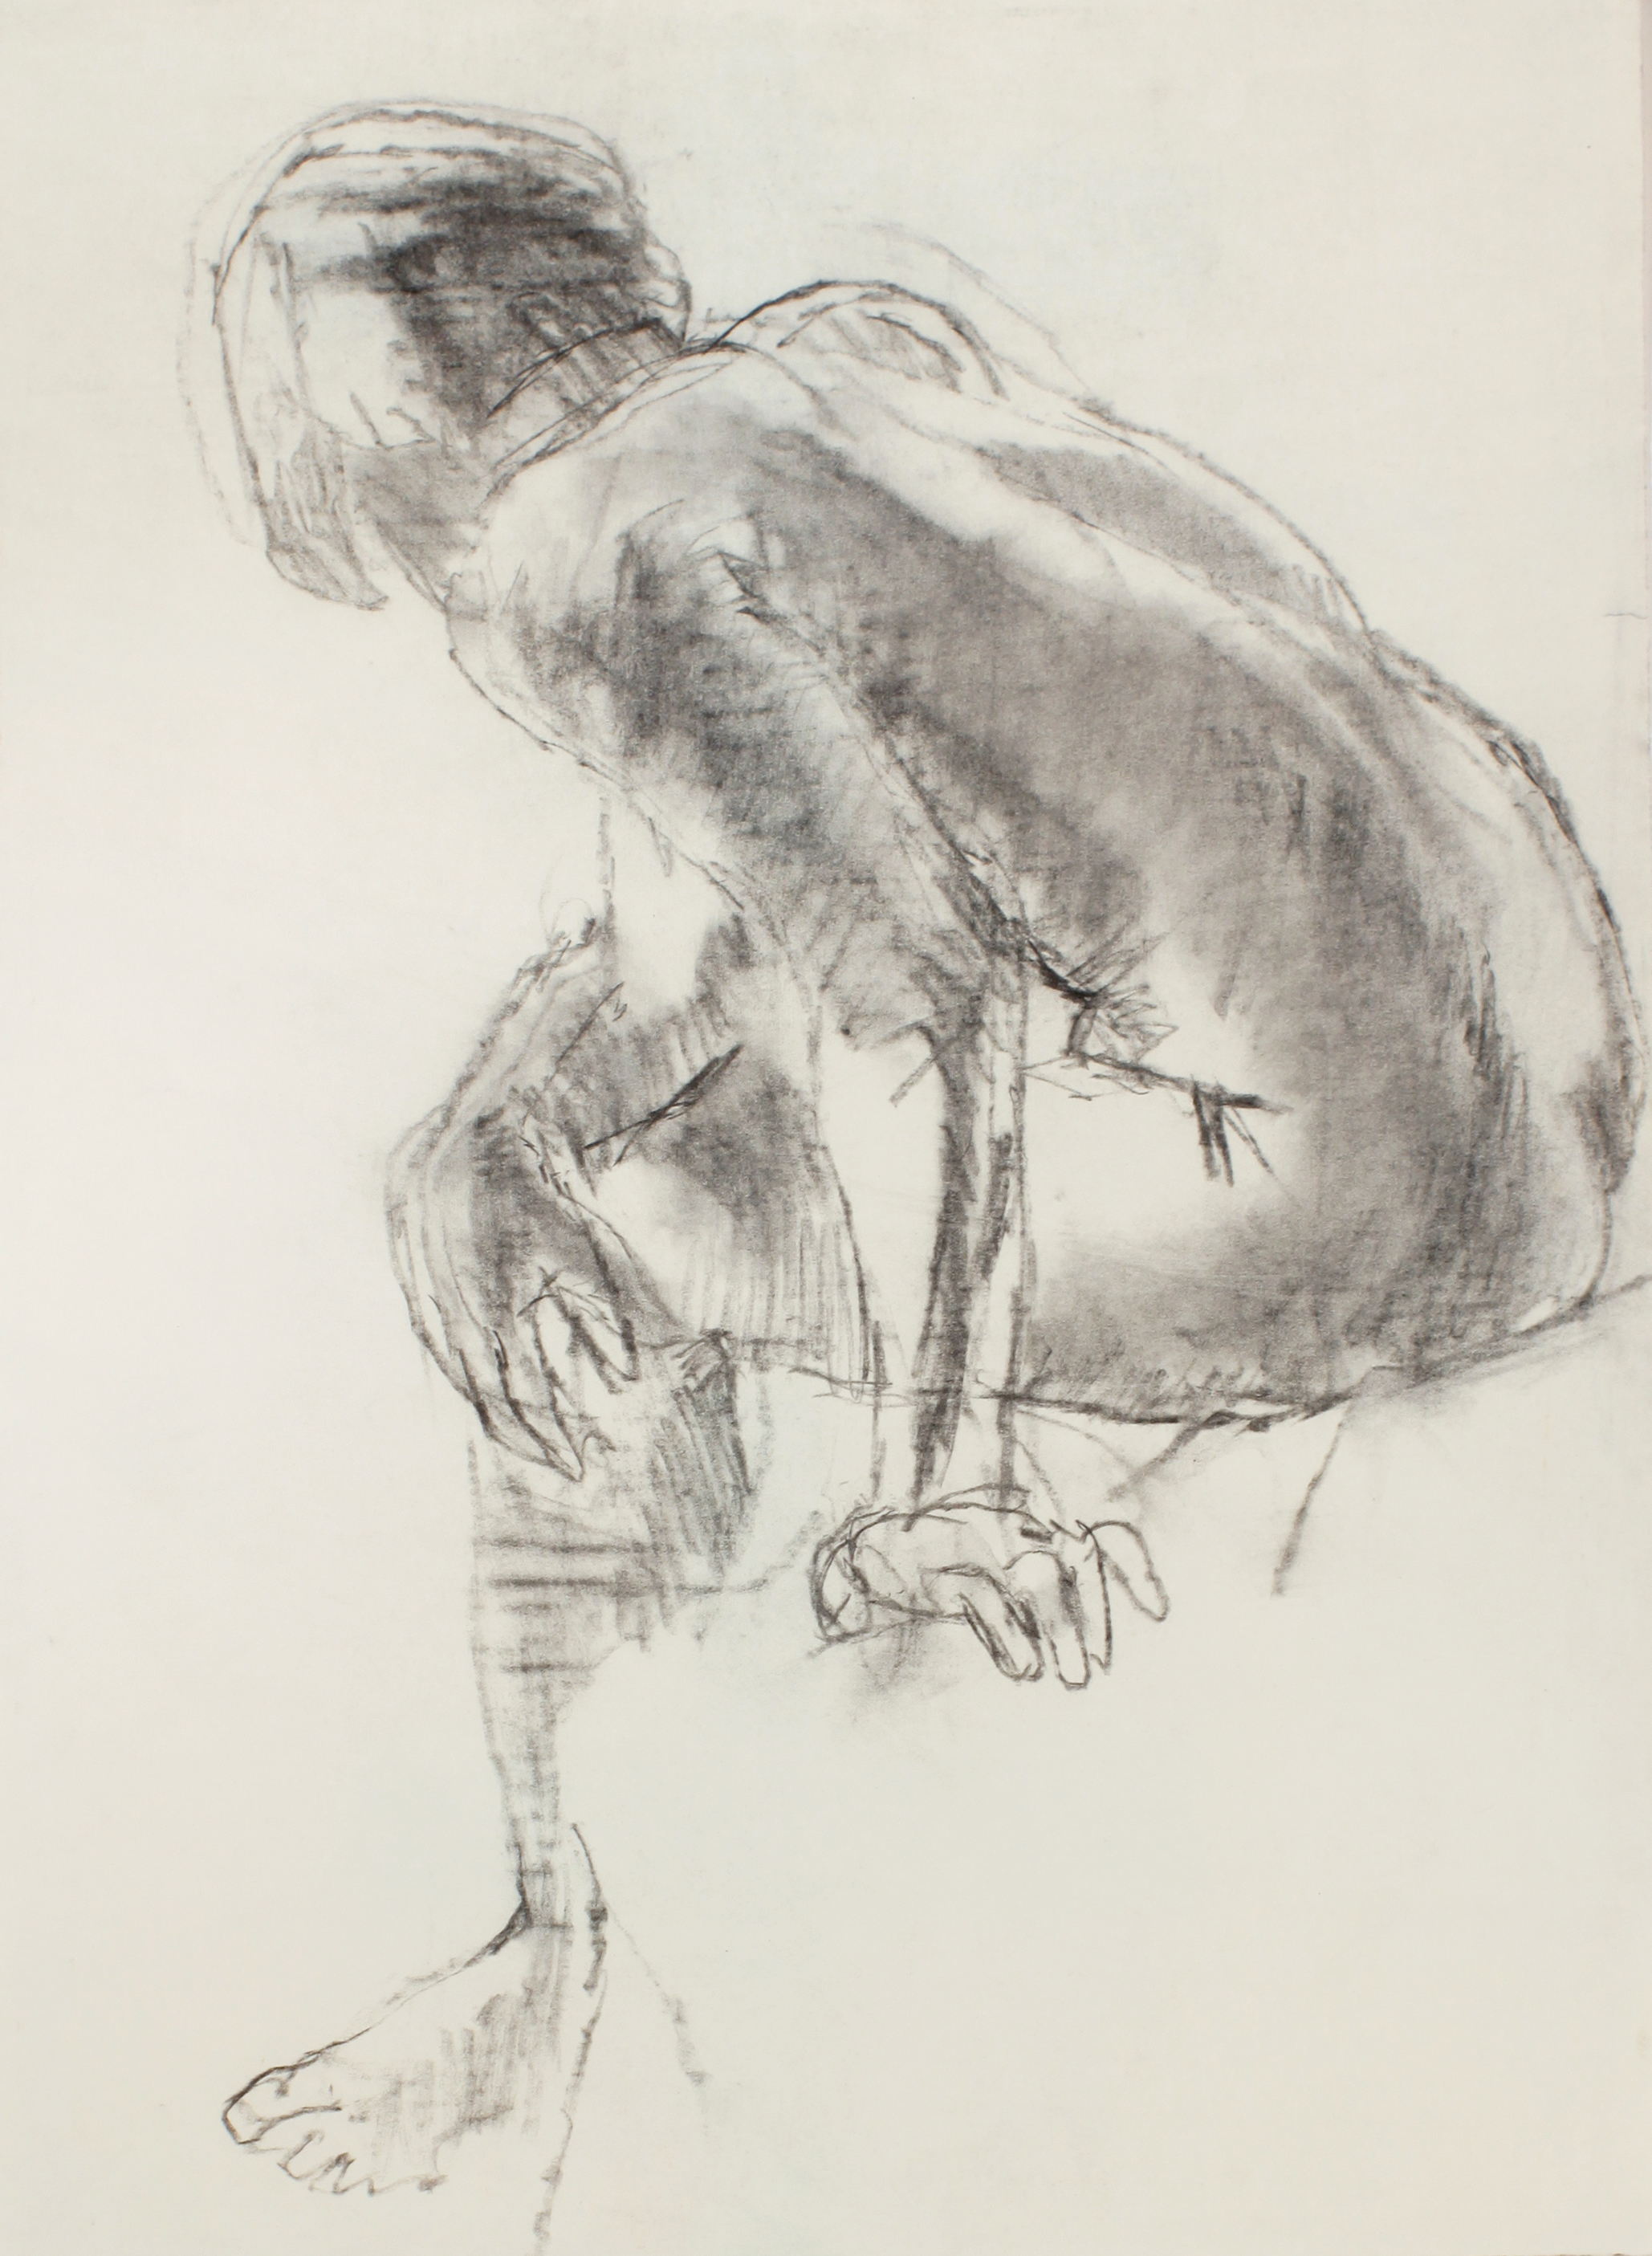 1980s_Seated_Nude_Bending_Forward_From_Back_charcoal_on_paper_26x19in_WPF486.jpg